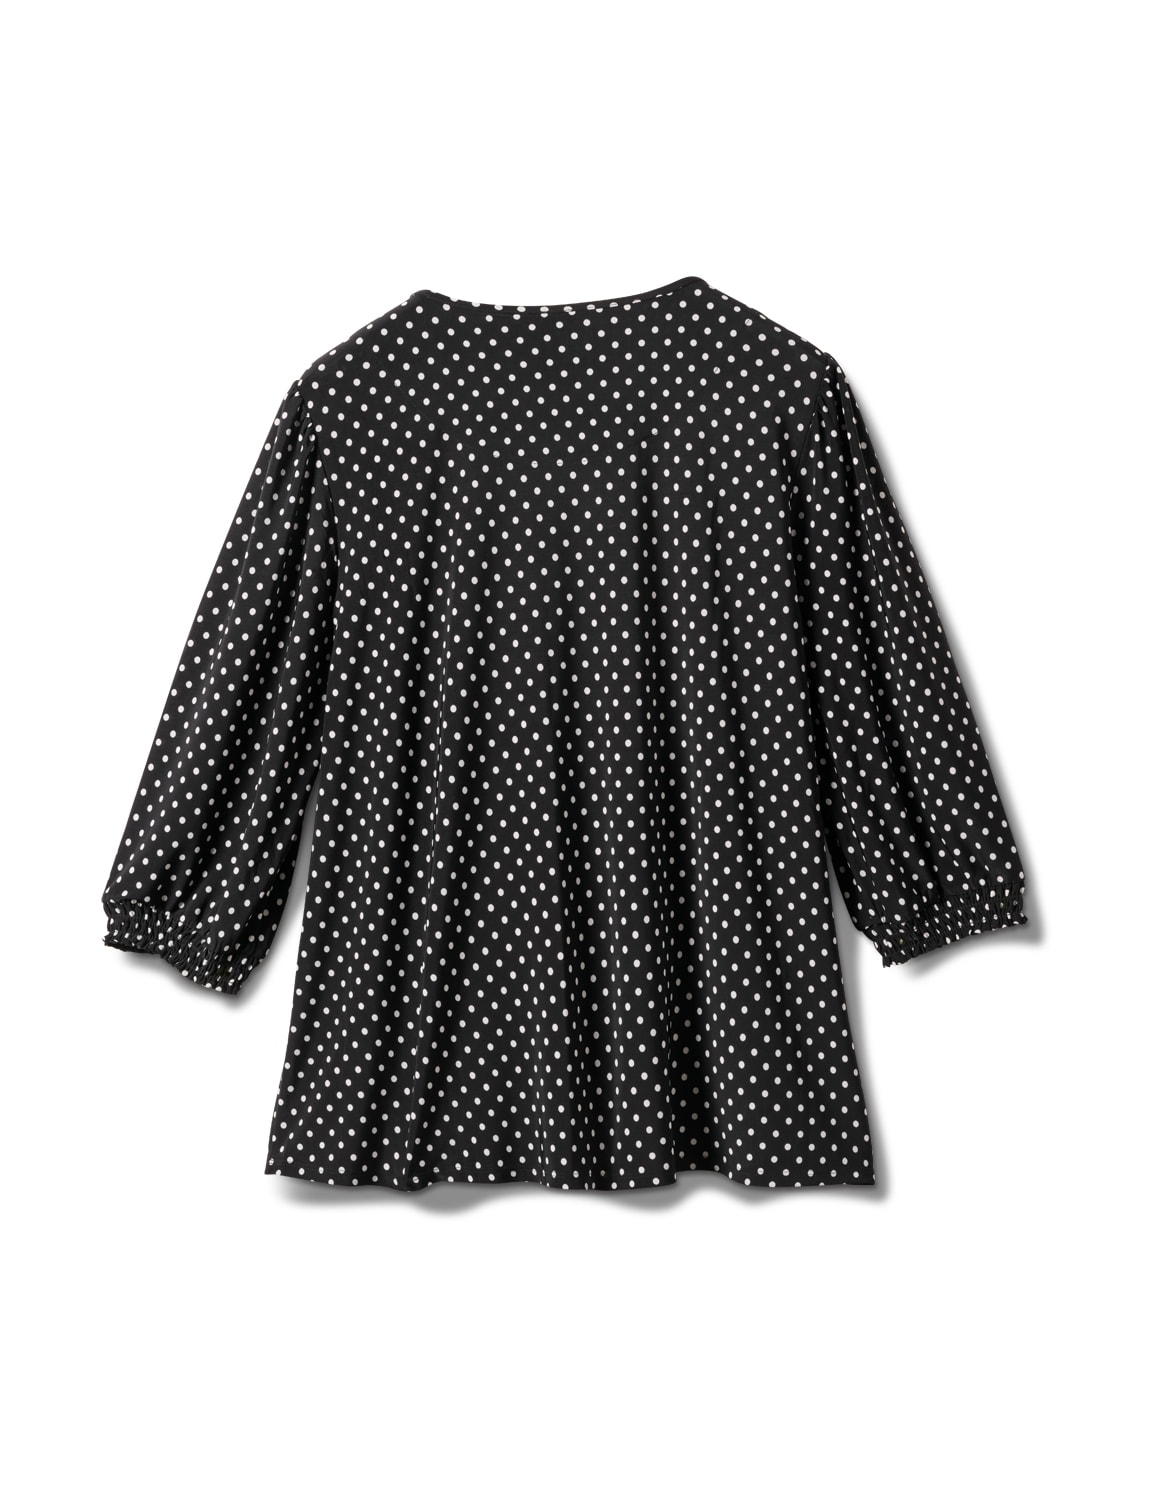 3/4 Sleeve Dot Smocked Knit Top - Plus - Black/White - Back